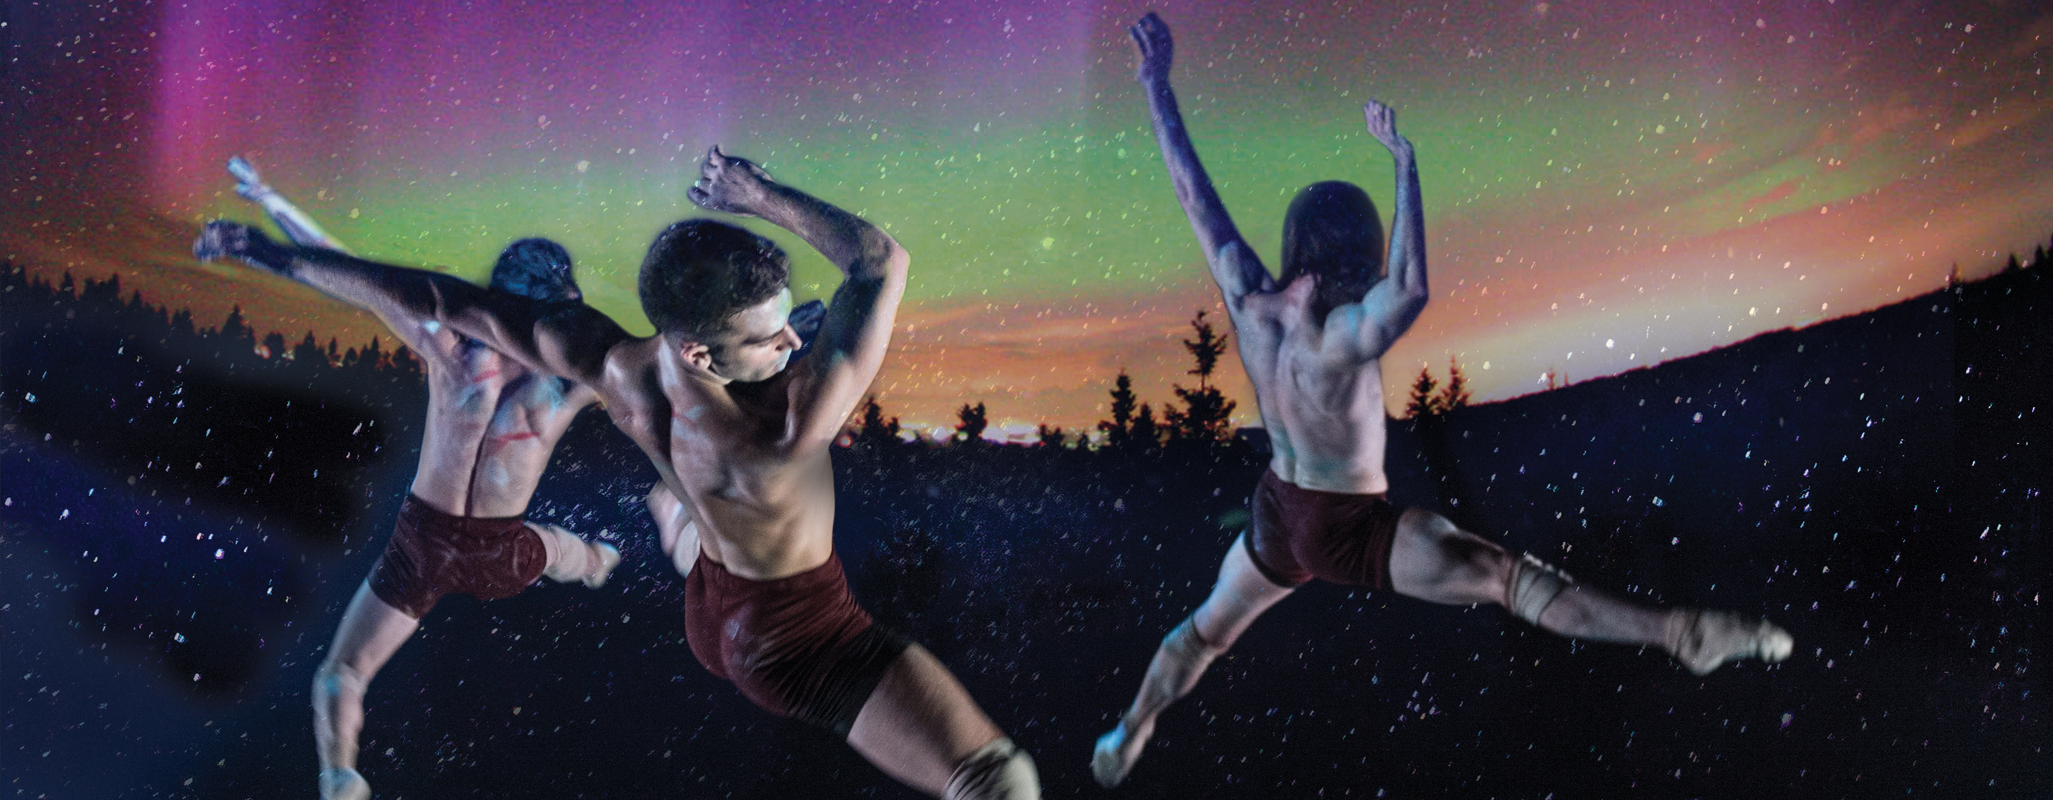 Indigenous Canadian dancers leap against the sparkling backdrop of the Northern Lights.